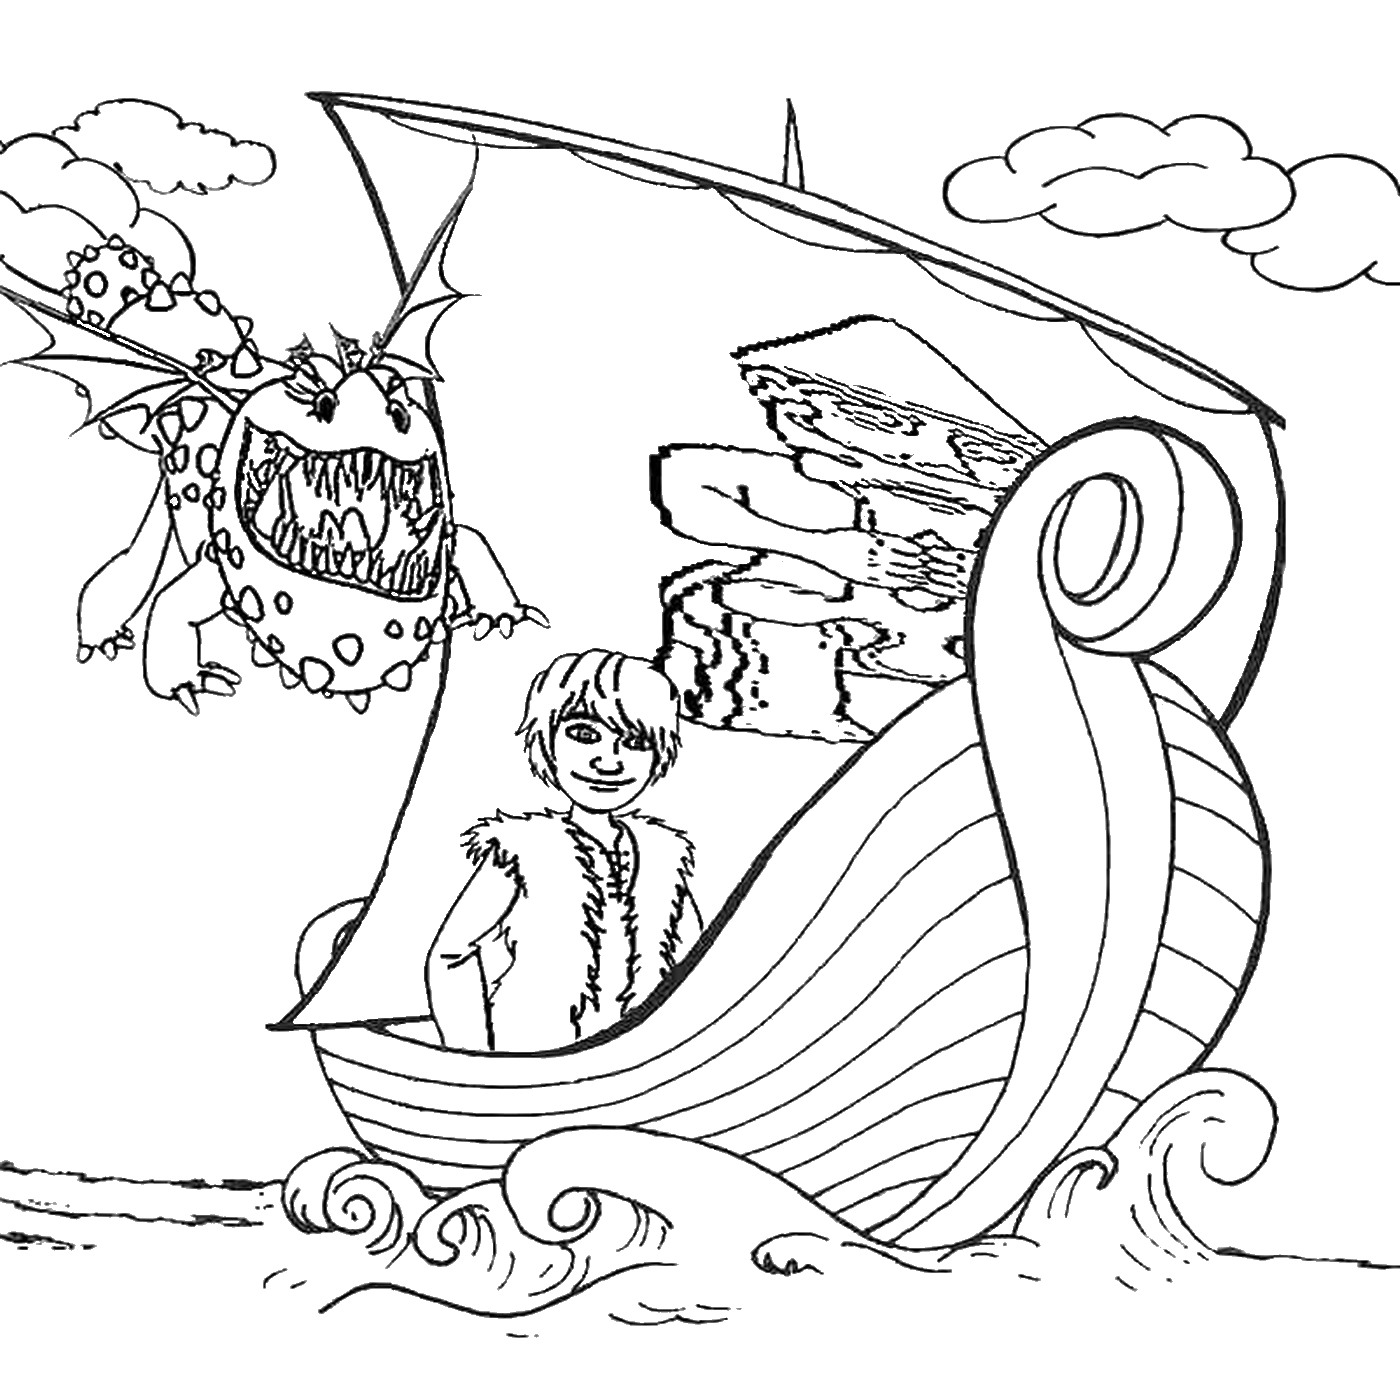 Coloring Pages Printable For Preschoolers 1400x1400 Pin By LMI KIDS Disney On How To Train Your Dragon Pinterest